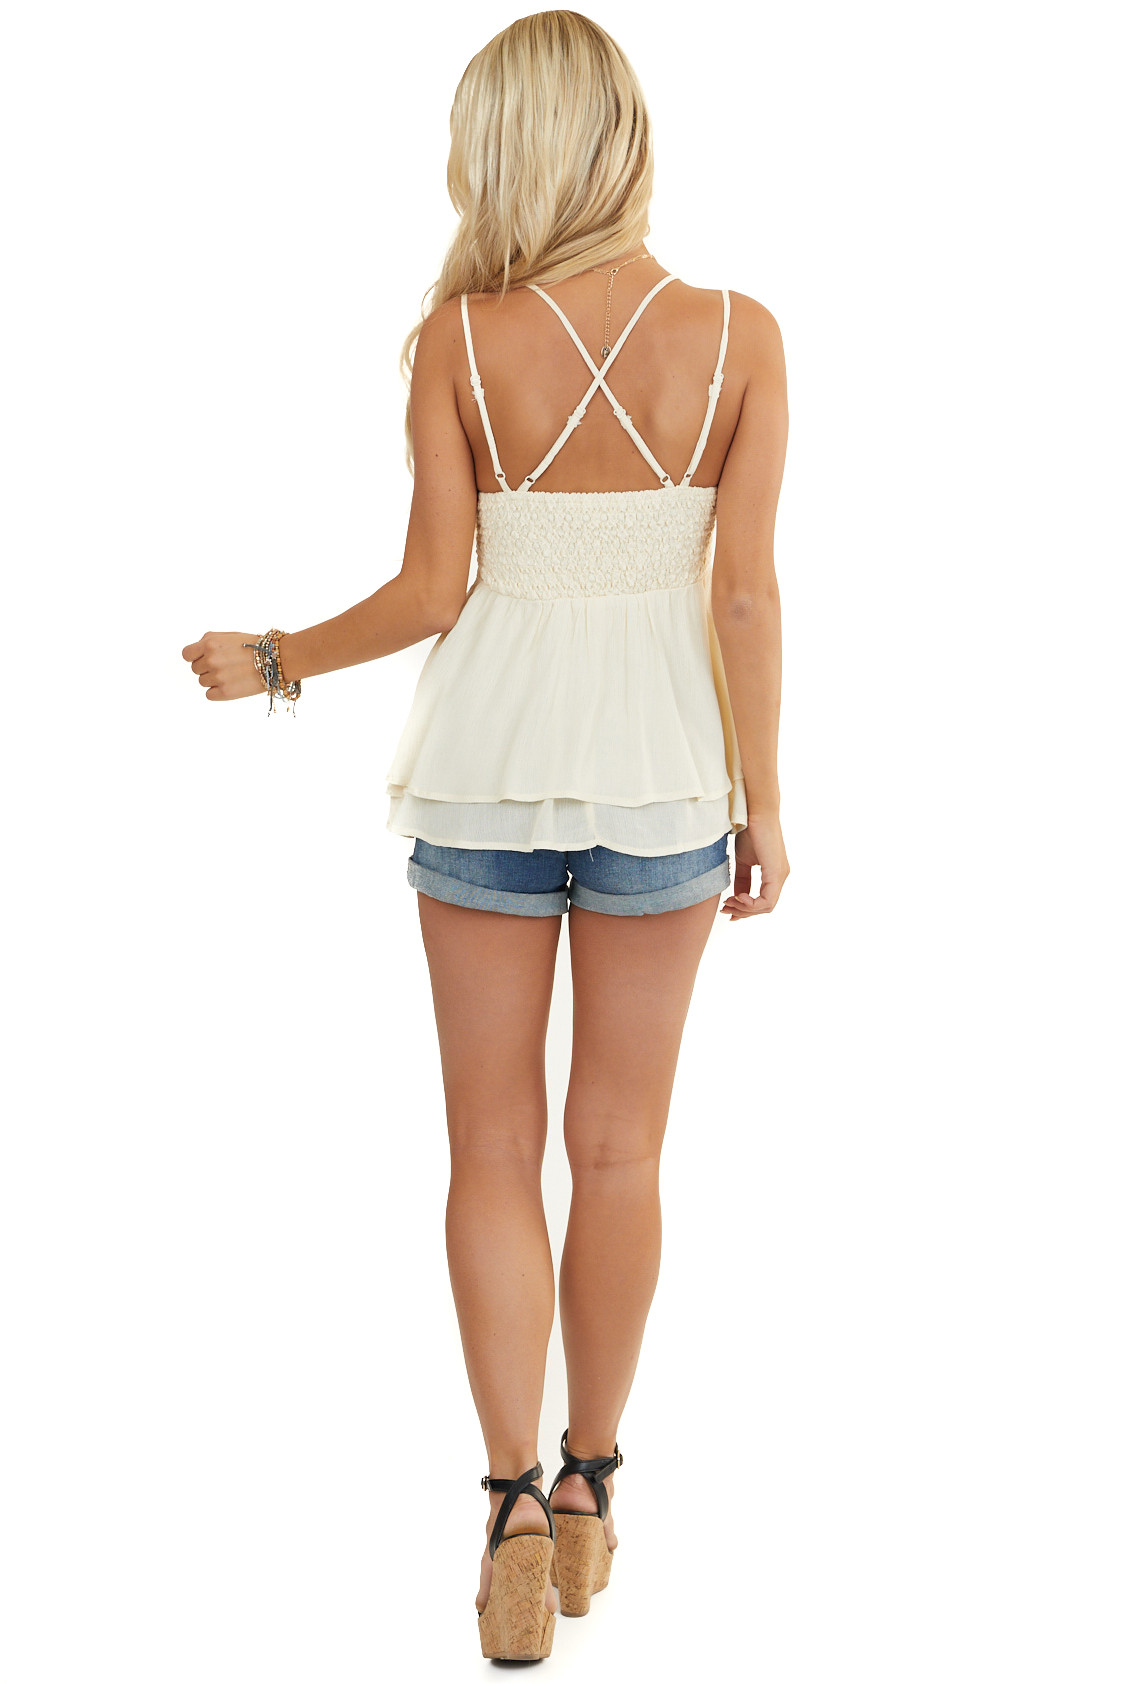 Cream Camisole Woven Top with Smocked Back and Lace Details